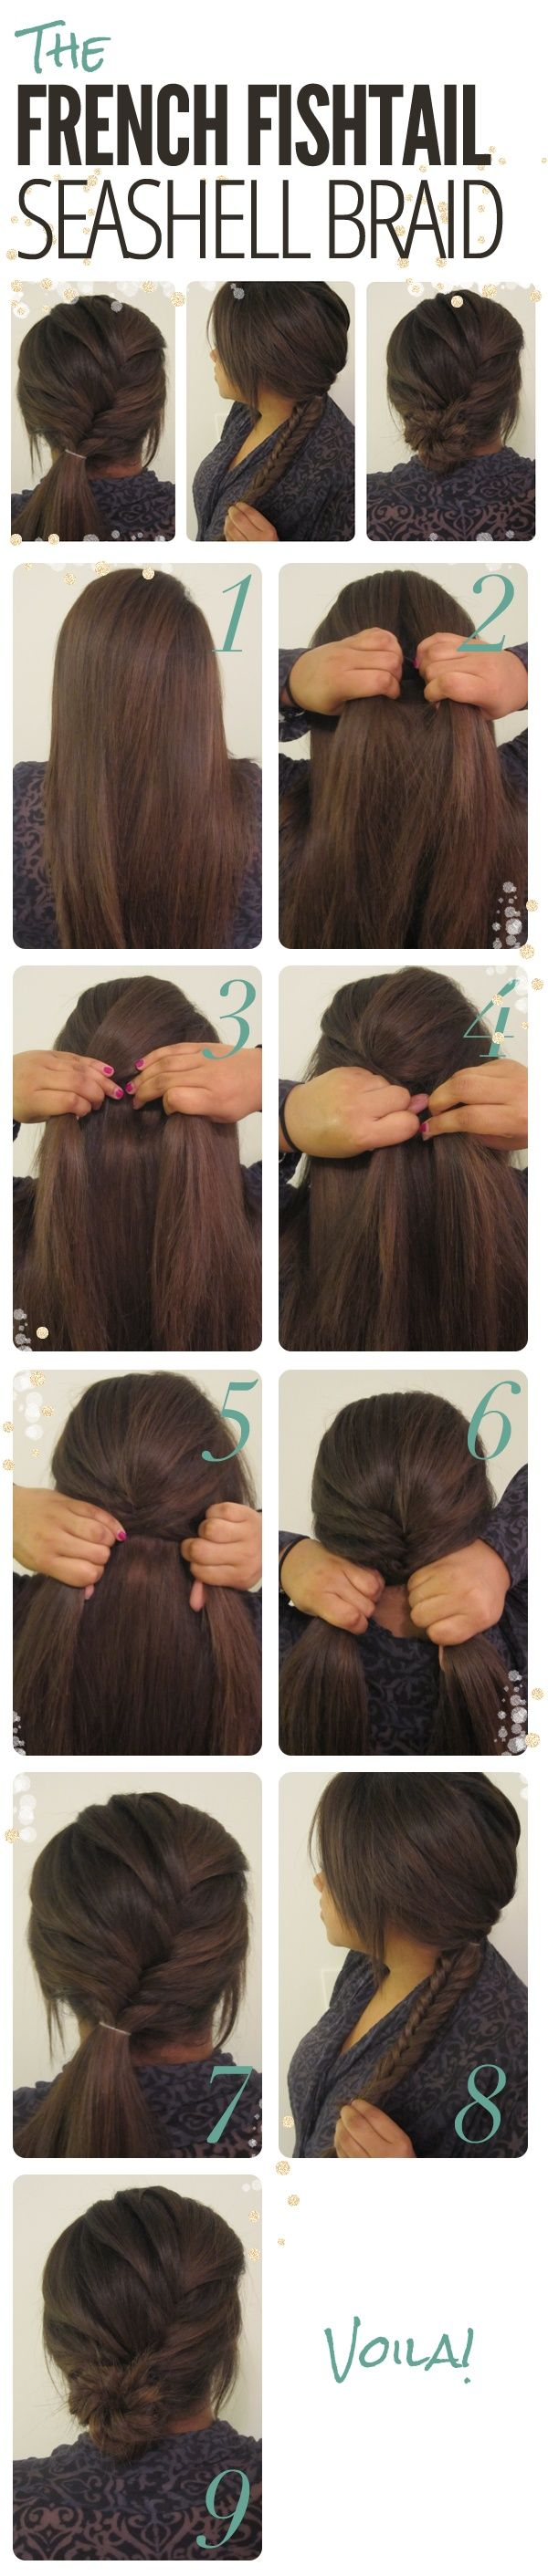 Find This Pin And More On Softball Hairstyle The French Fishtail Seashell  Braid